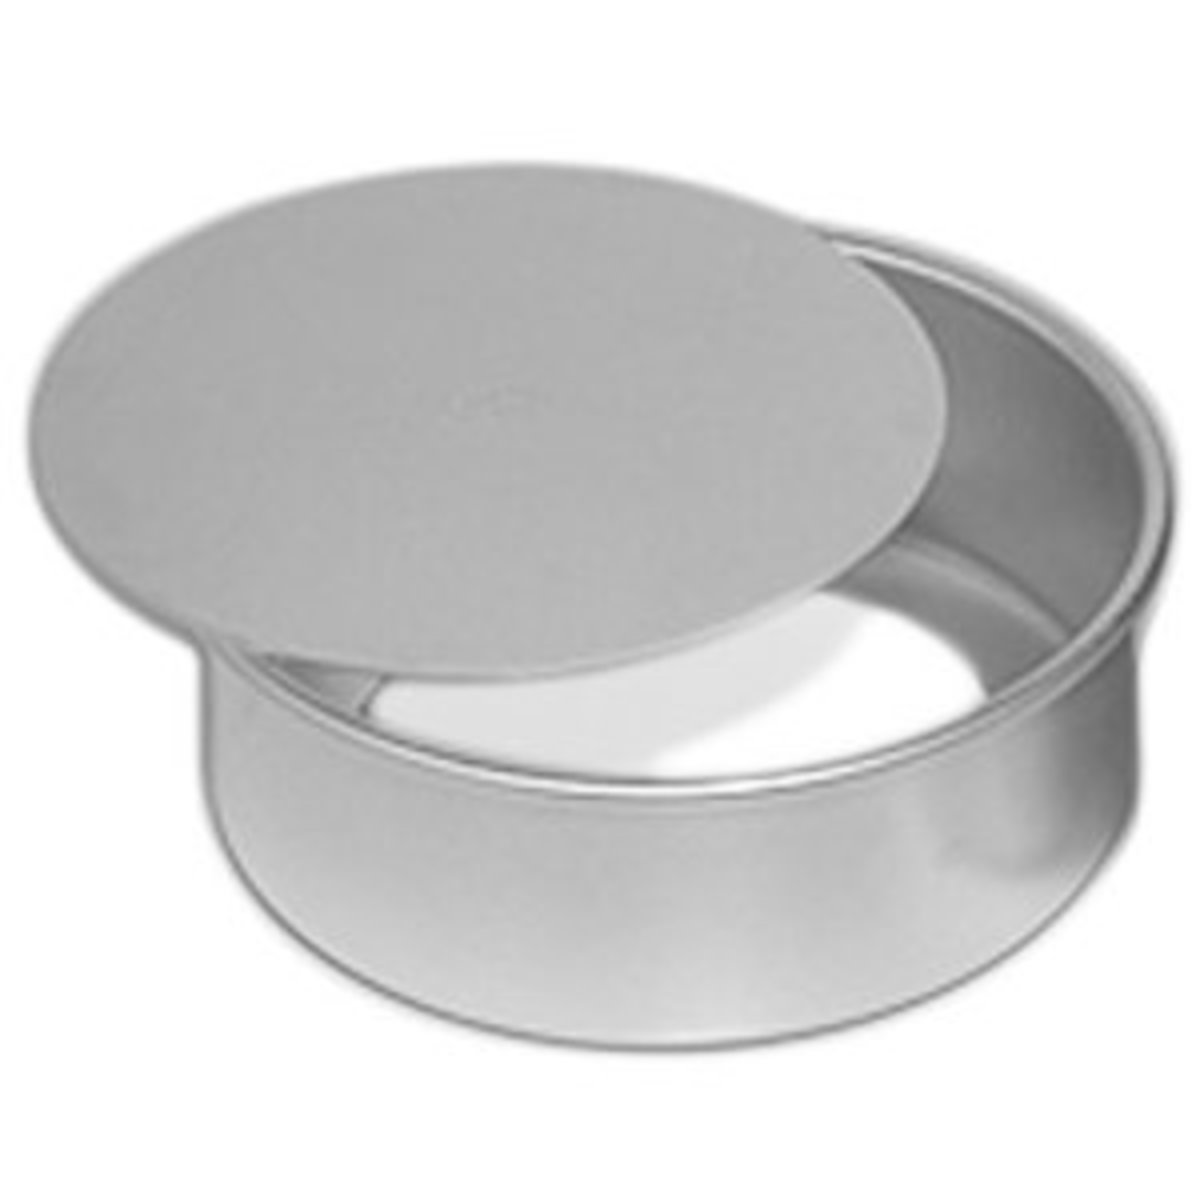 Ateco Round Cake Pan -  8 x 3 inches  $14.99 & Eligible for FREE Super Saver Shipping on orders over $25.